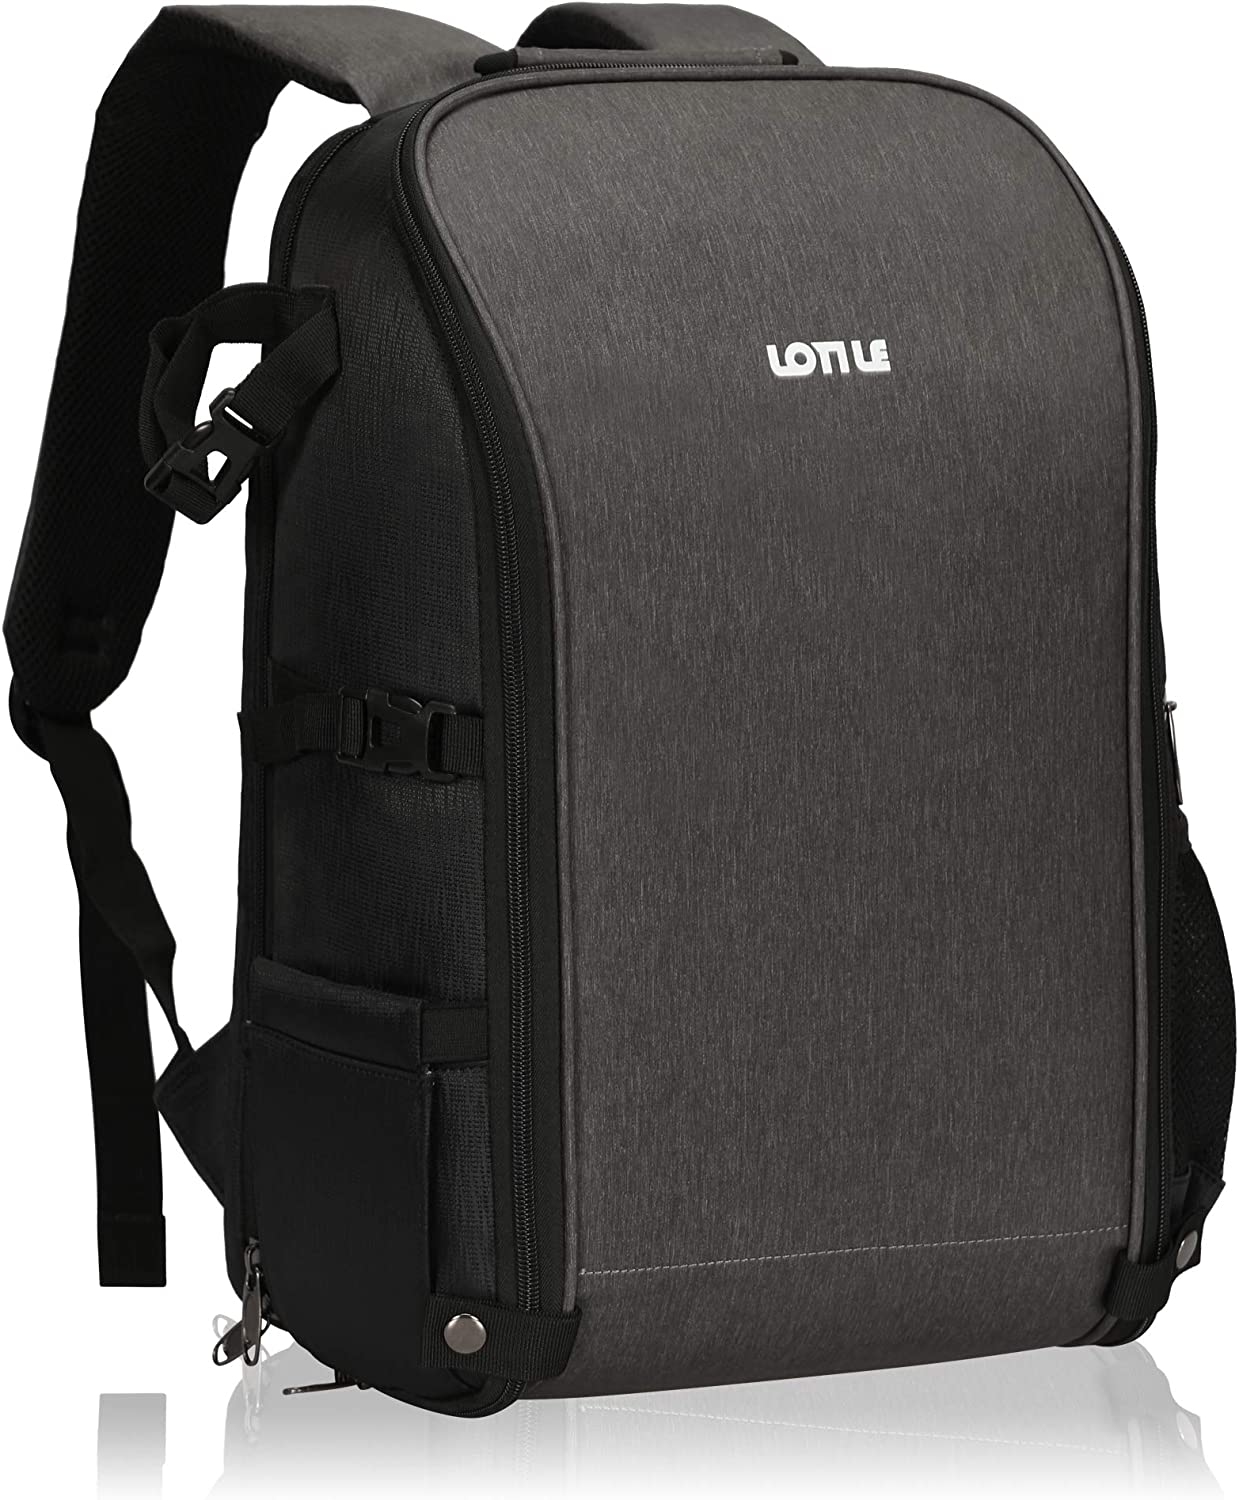 LOTILE Camera Backpack 15-inch Laptop Bag, Anti-Theft Professional 24L Camera Case with Rain Cover(Grey)